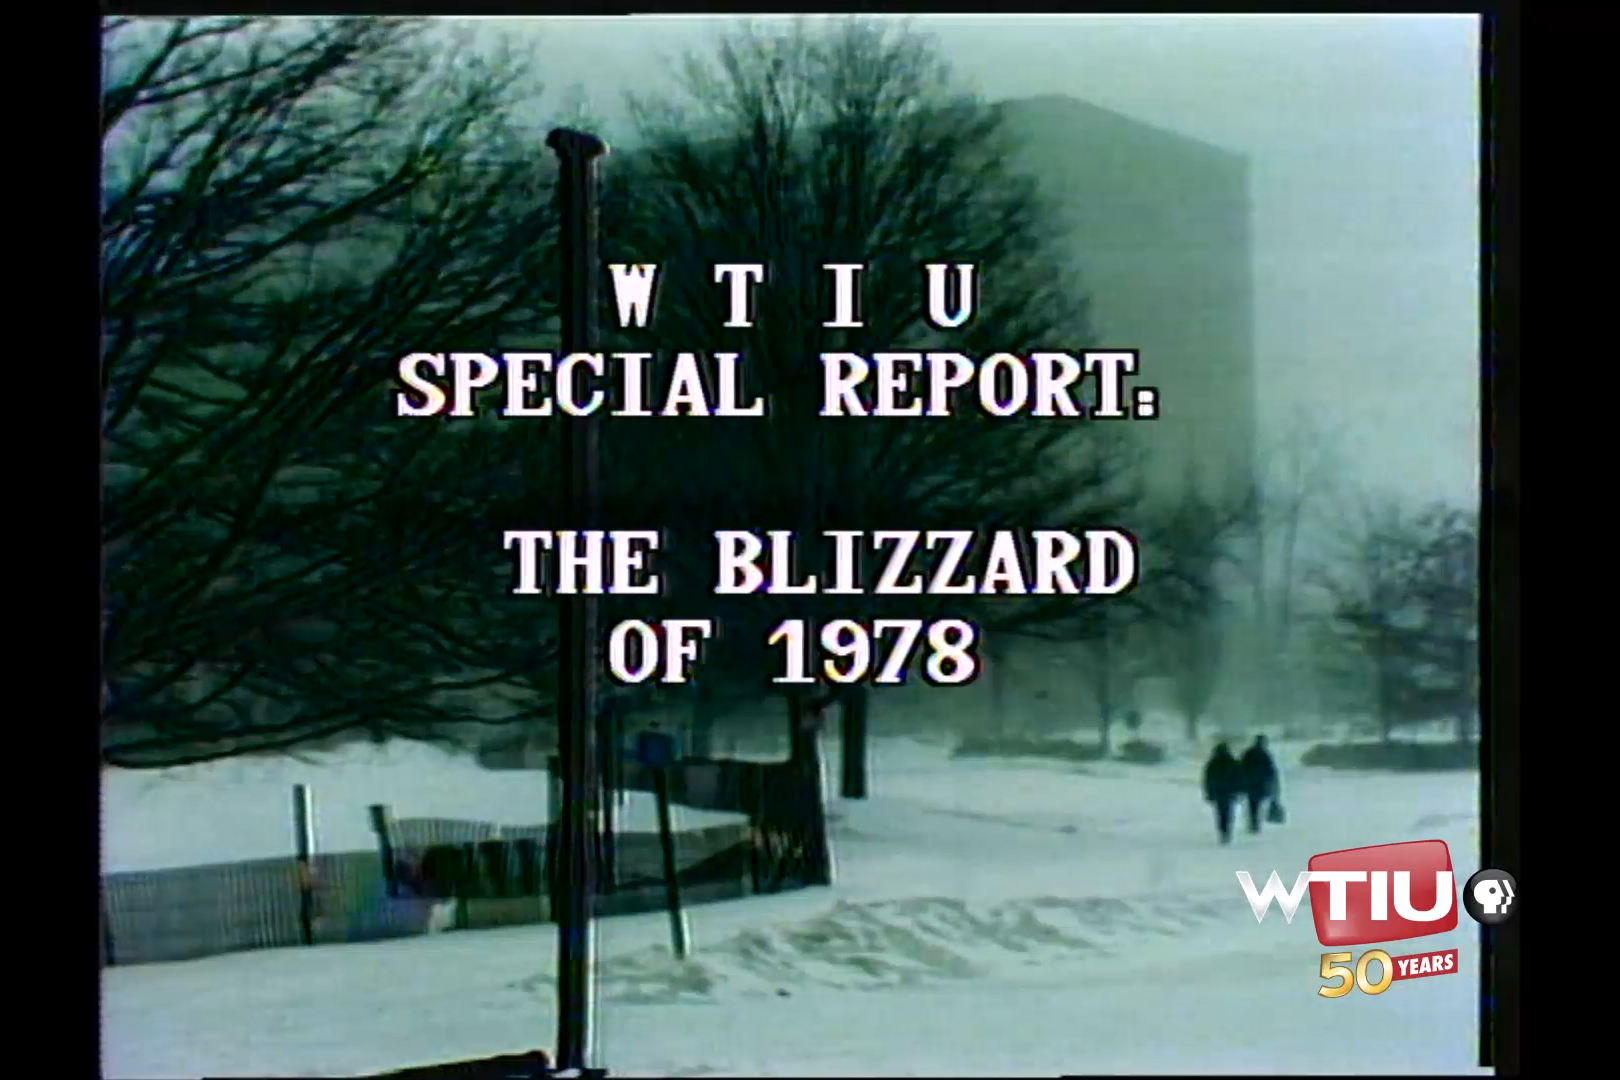 A snowy image of Indiana University's campus for WTIU's special report on the Blizzard of 1978.